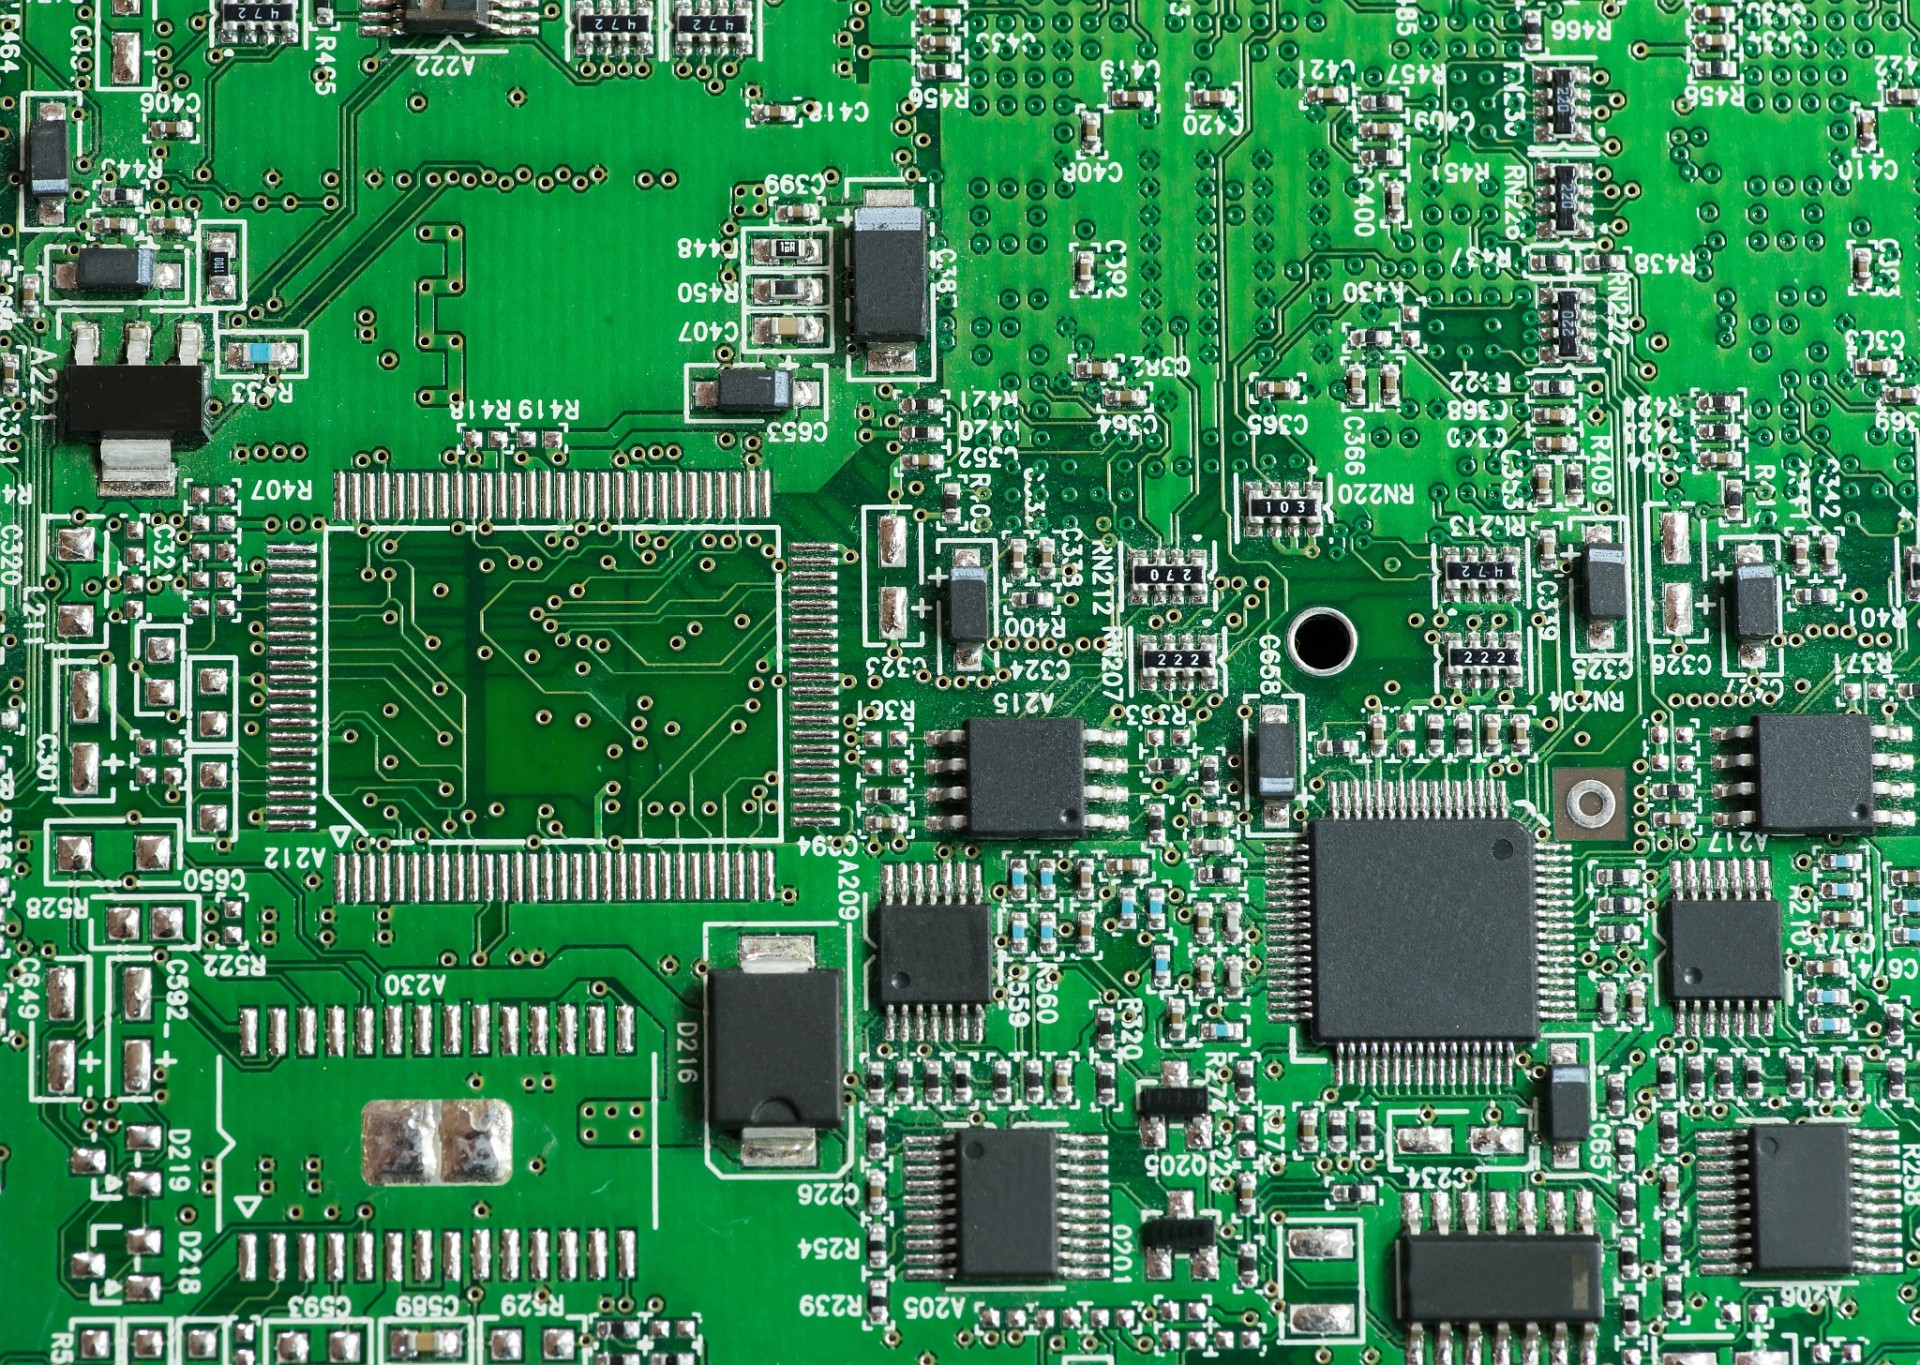 7 fatal mistakes to avoid on your pcb design make7 fatal mistakes to avoid on your pcb design